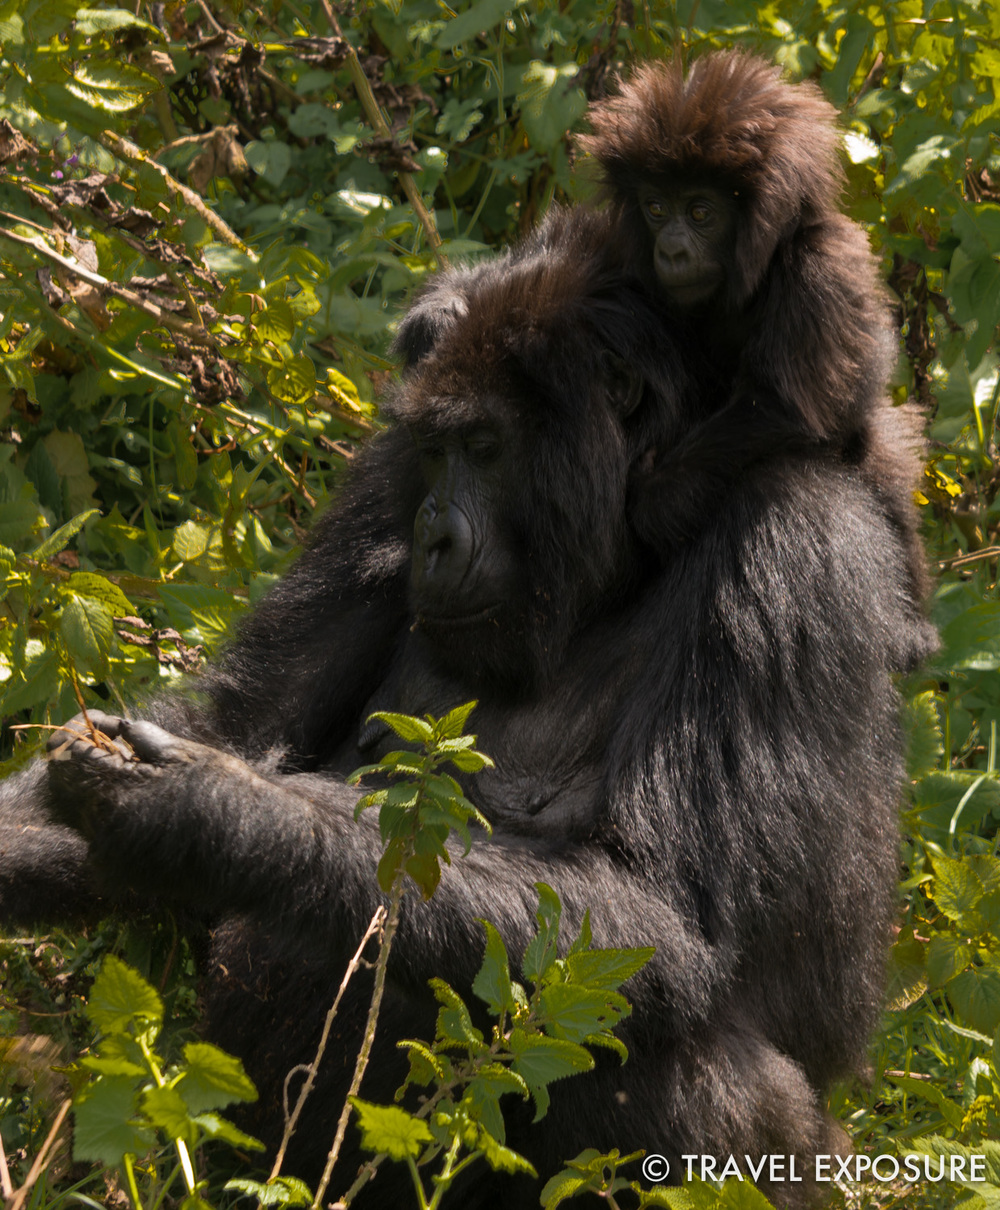 WEEK OF JUNE 30 A mother and baby gorilla feed in Mount Bisoke - part of the Virunga Mountain Range in Rwanda.